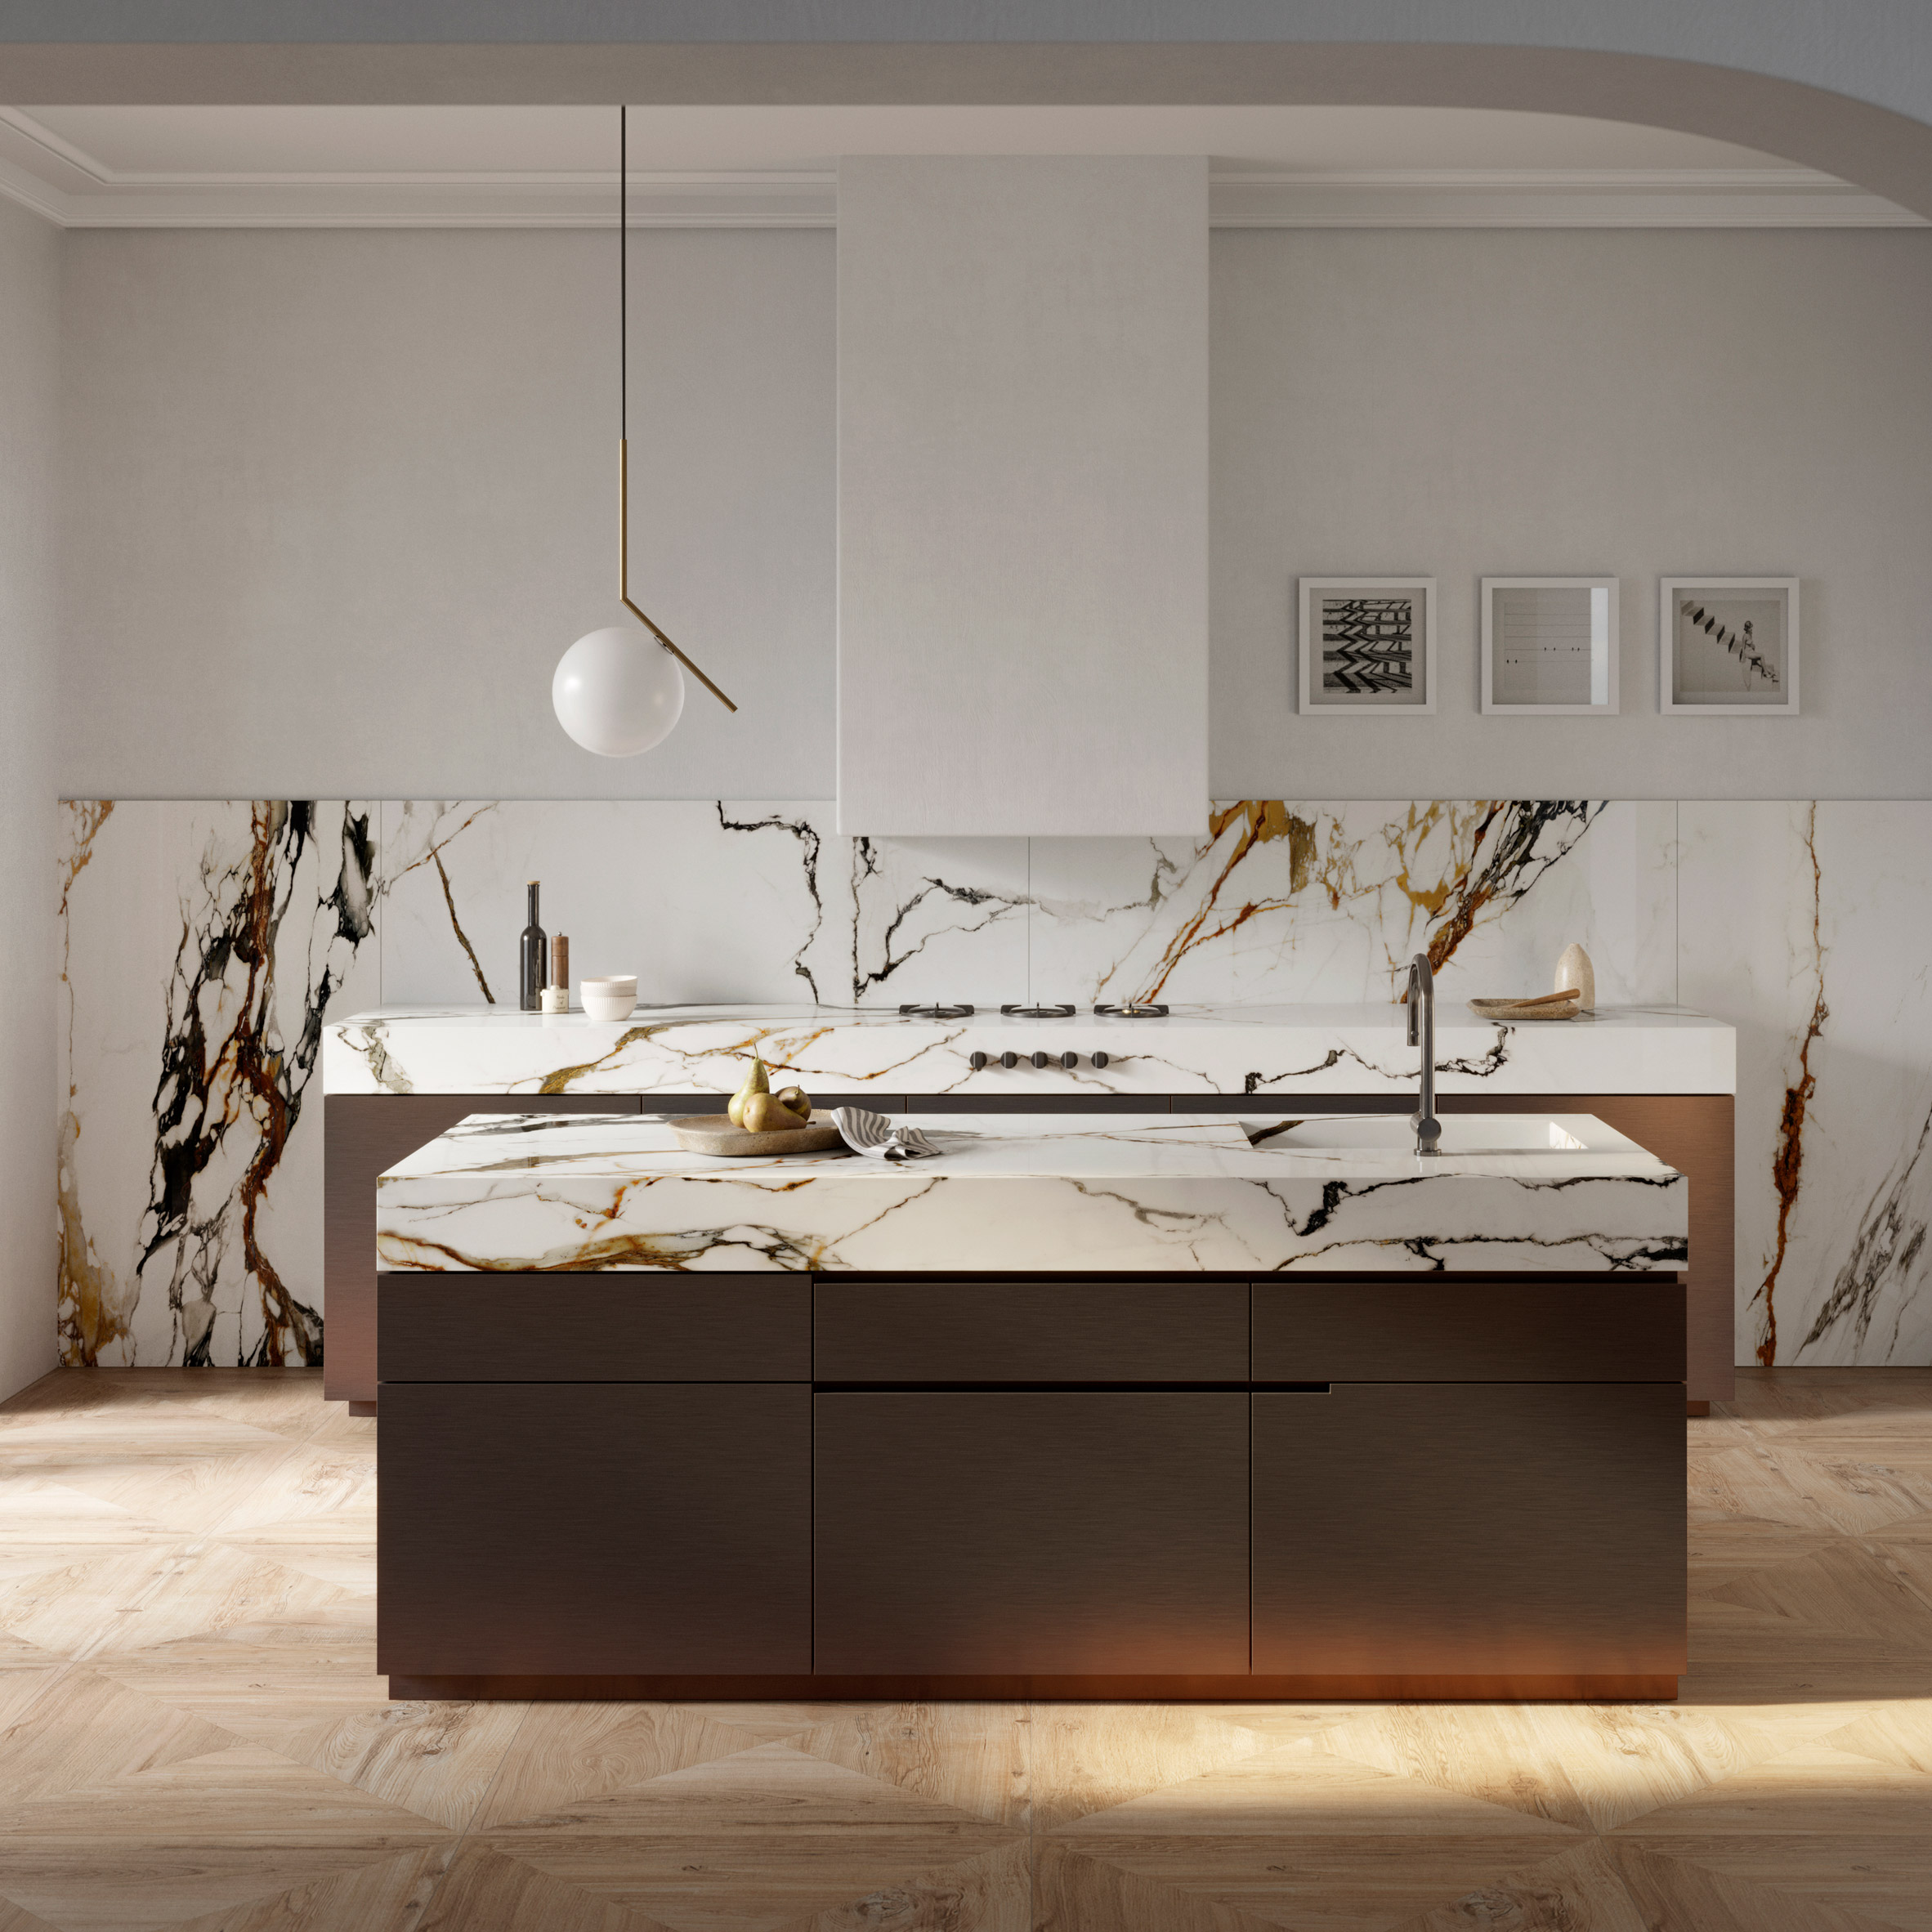 Paonazzo Biondo surfacing by Porcelanosa